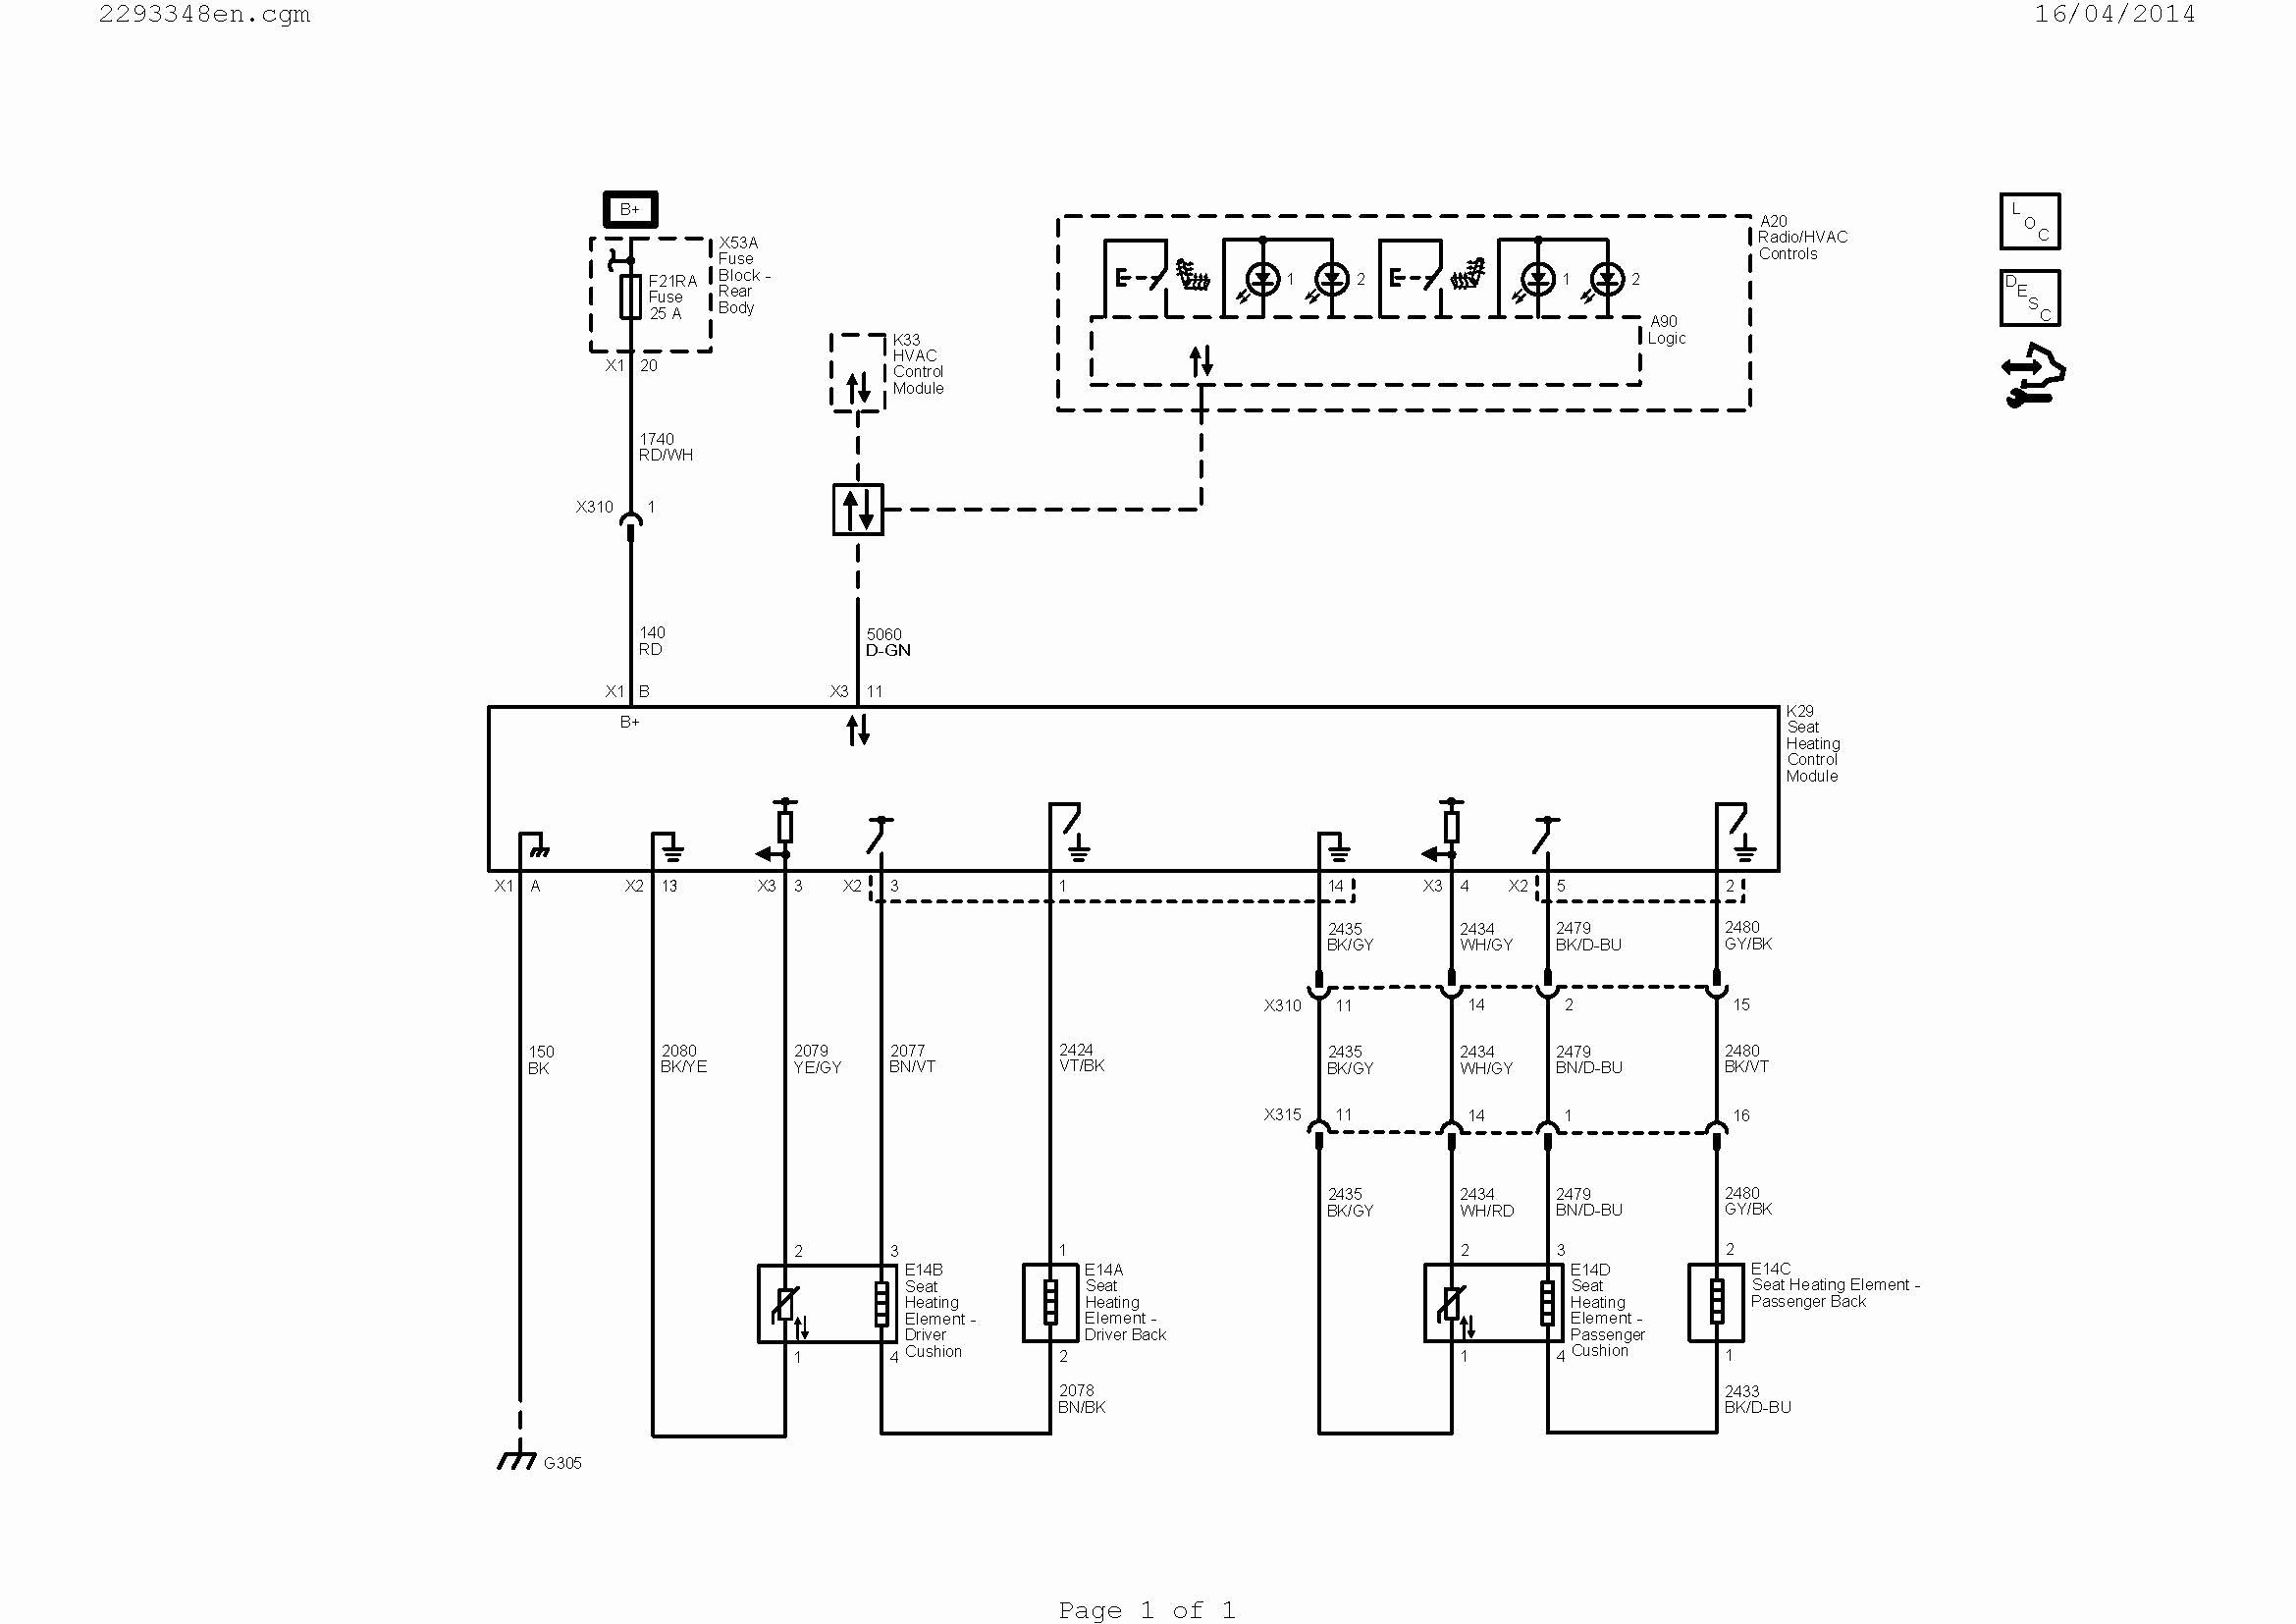 Wiring Diagram Honeywell Dpdt | Wiring Diagram - Nest Wiring Diagram From 8124 Aquastat And 24V Transformer